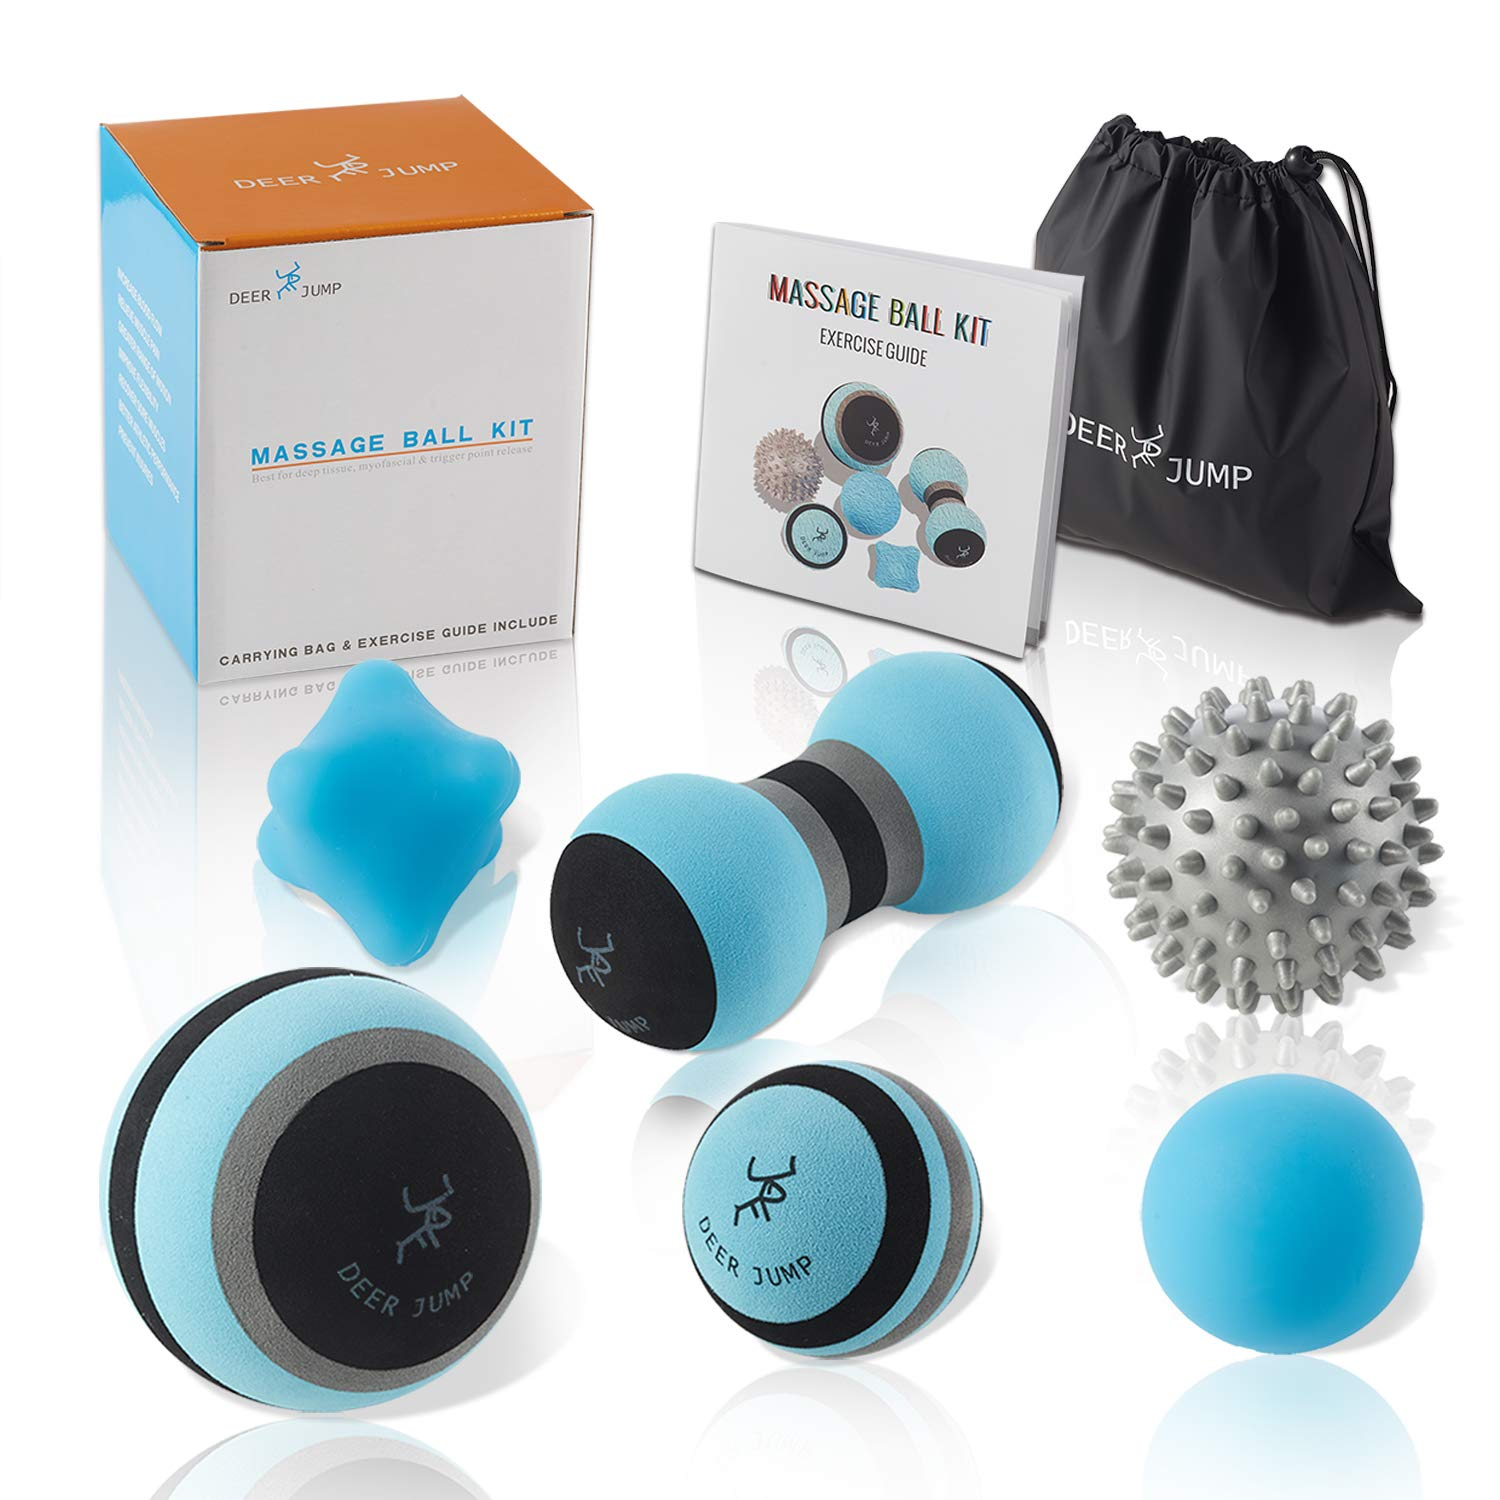 Massage Ball Kit for Myofascial Trigger Point Release & Deep Tissue Massage - Set of 6 - Large Foam/Small Foam/Lacrosse/Peanut/Spiky/Hand Exercise Ball - Carry Bag & Exercise Guide Include by DEERJUMP